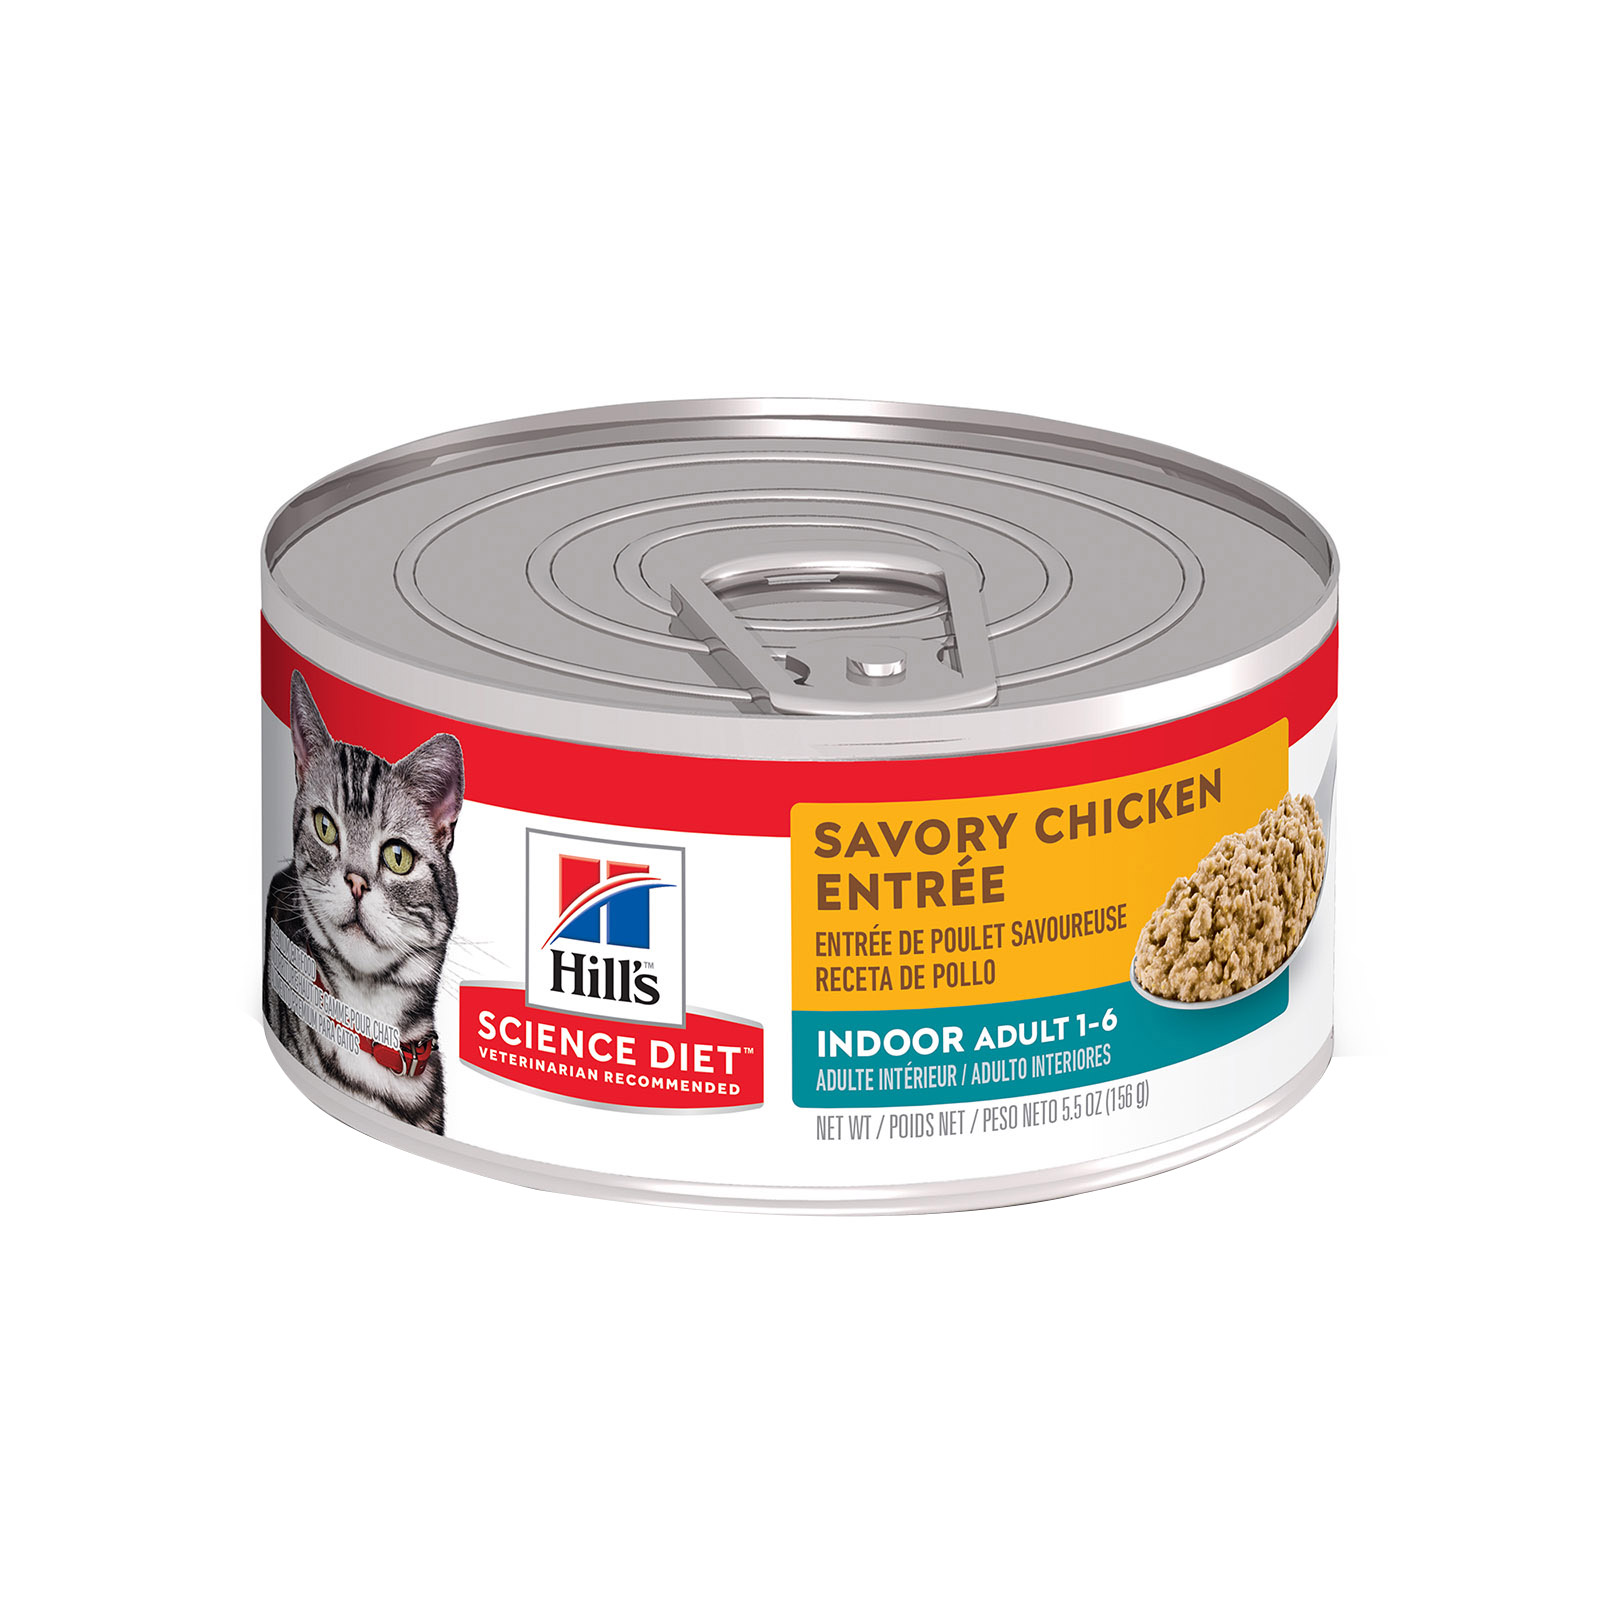 Hill's Science Diet Adult Indoor Savory Chicken Entrée Canned Wet Cat Food  156 Gm